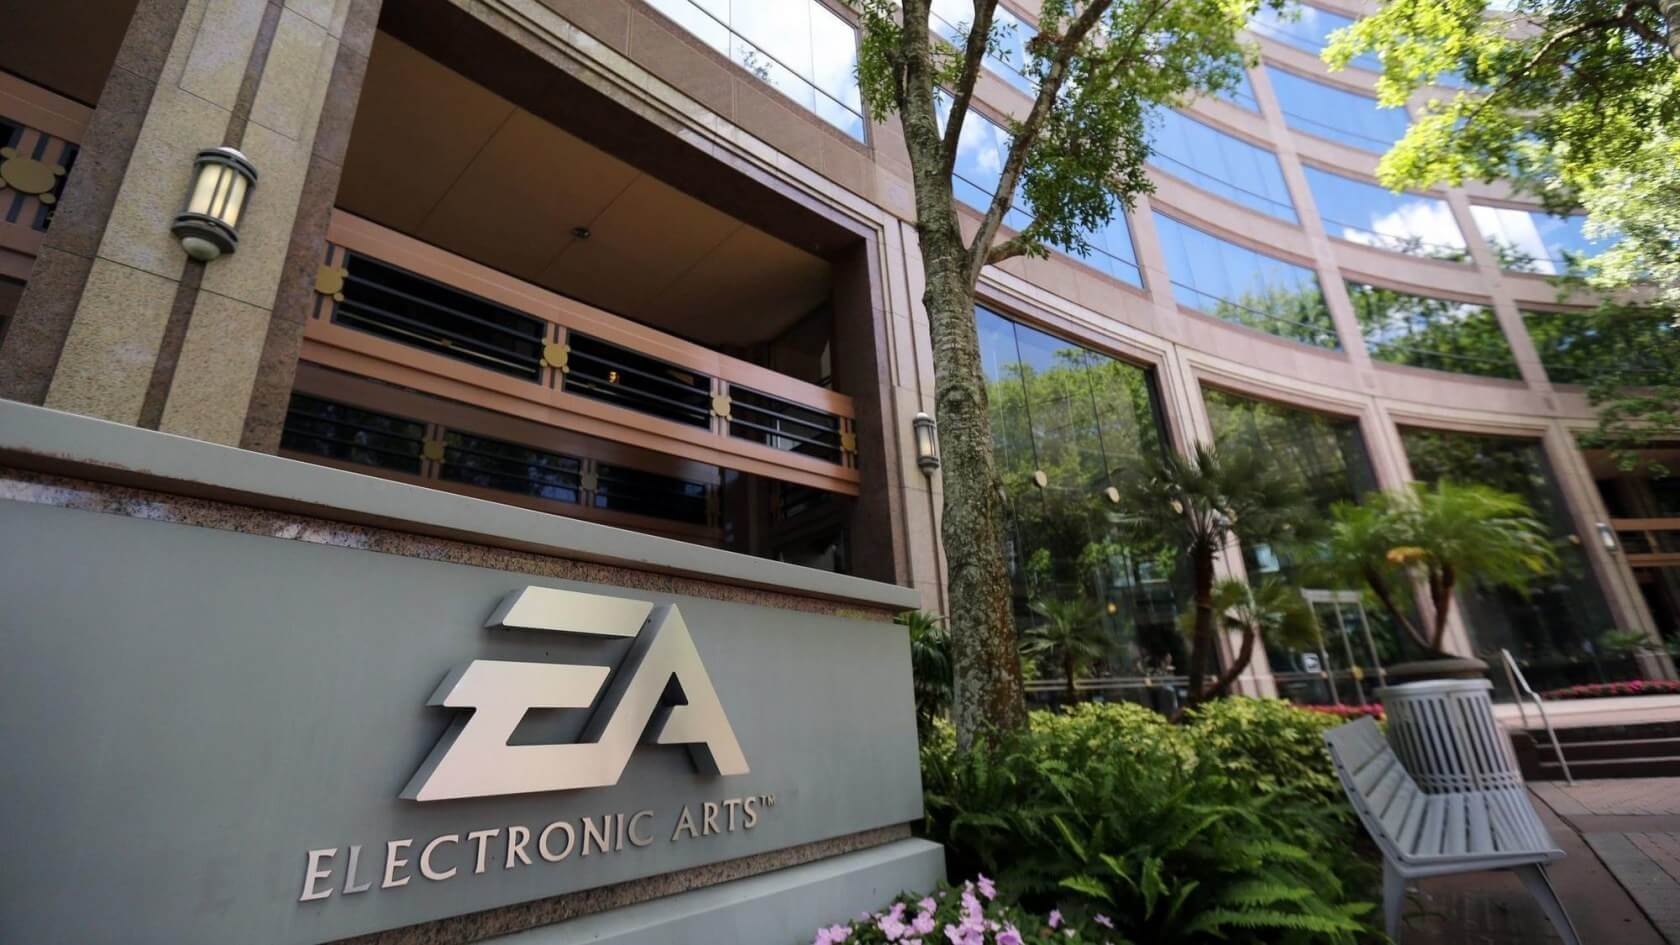 As the game streaming wars heat up, EA ponders its position